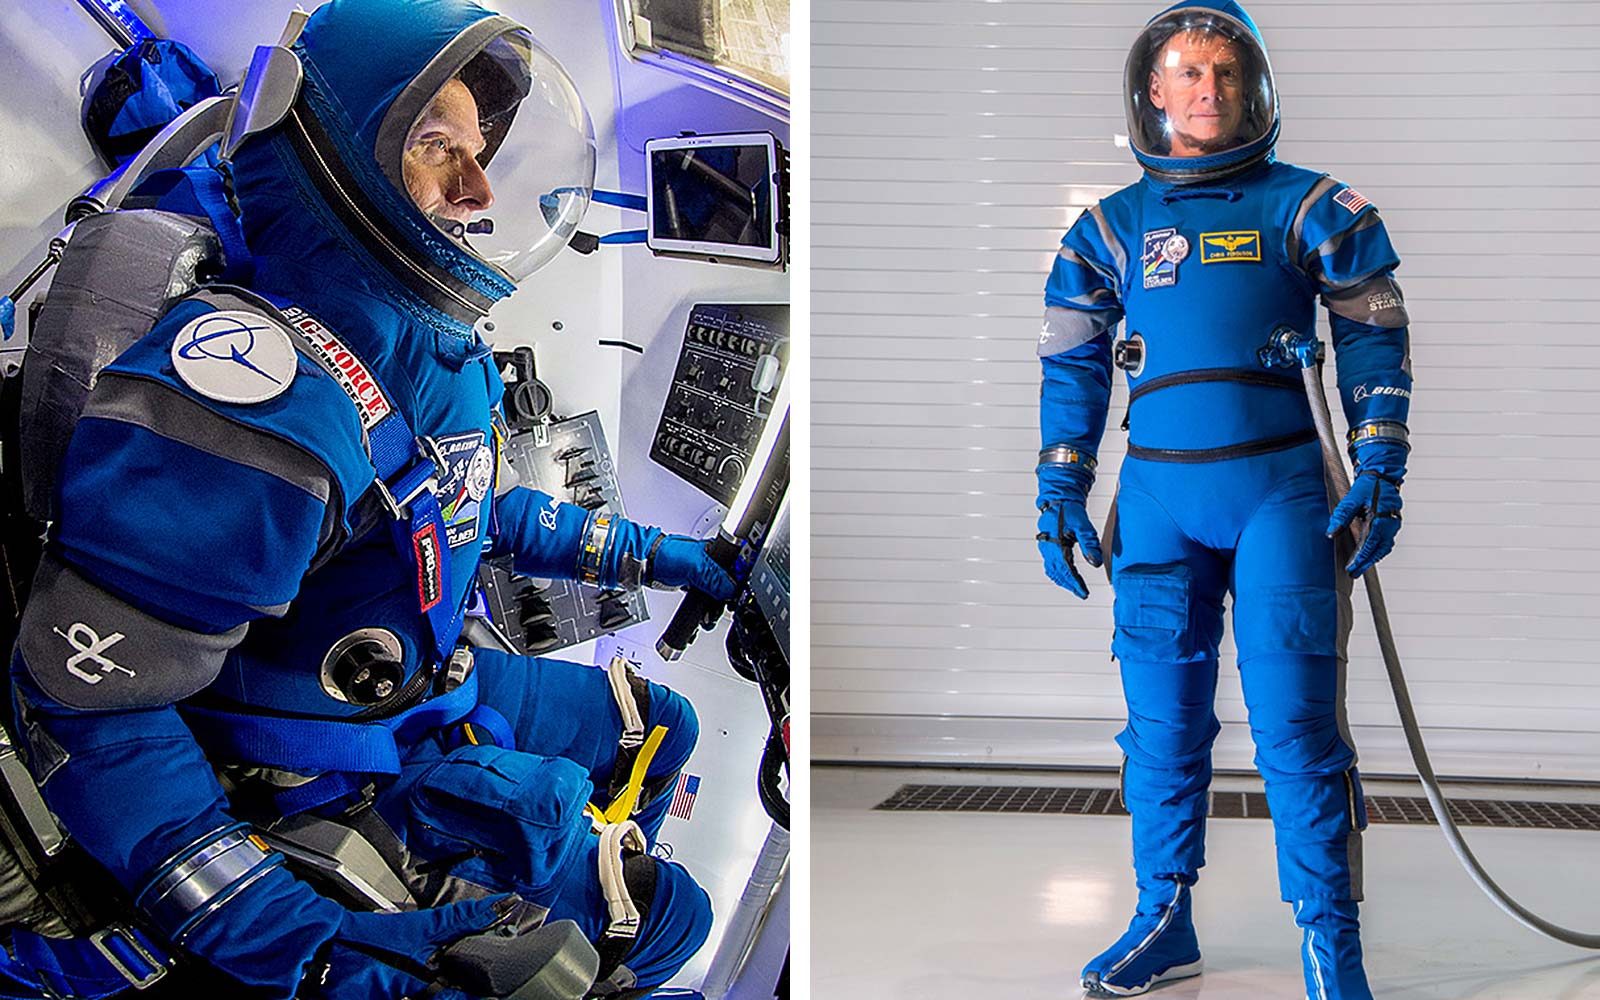 Boeing Just Designed the Most Modern Spacesuit Yet